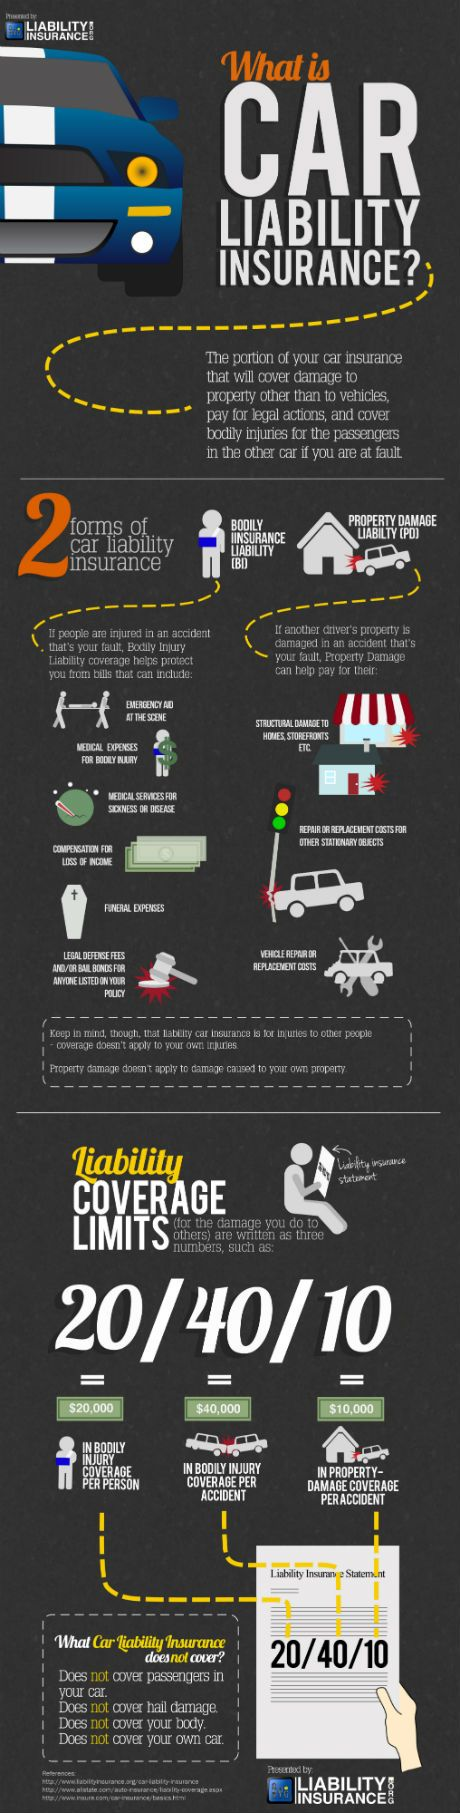 car liability insurance infographic Cars and trucks and